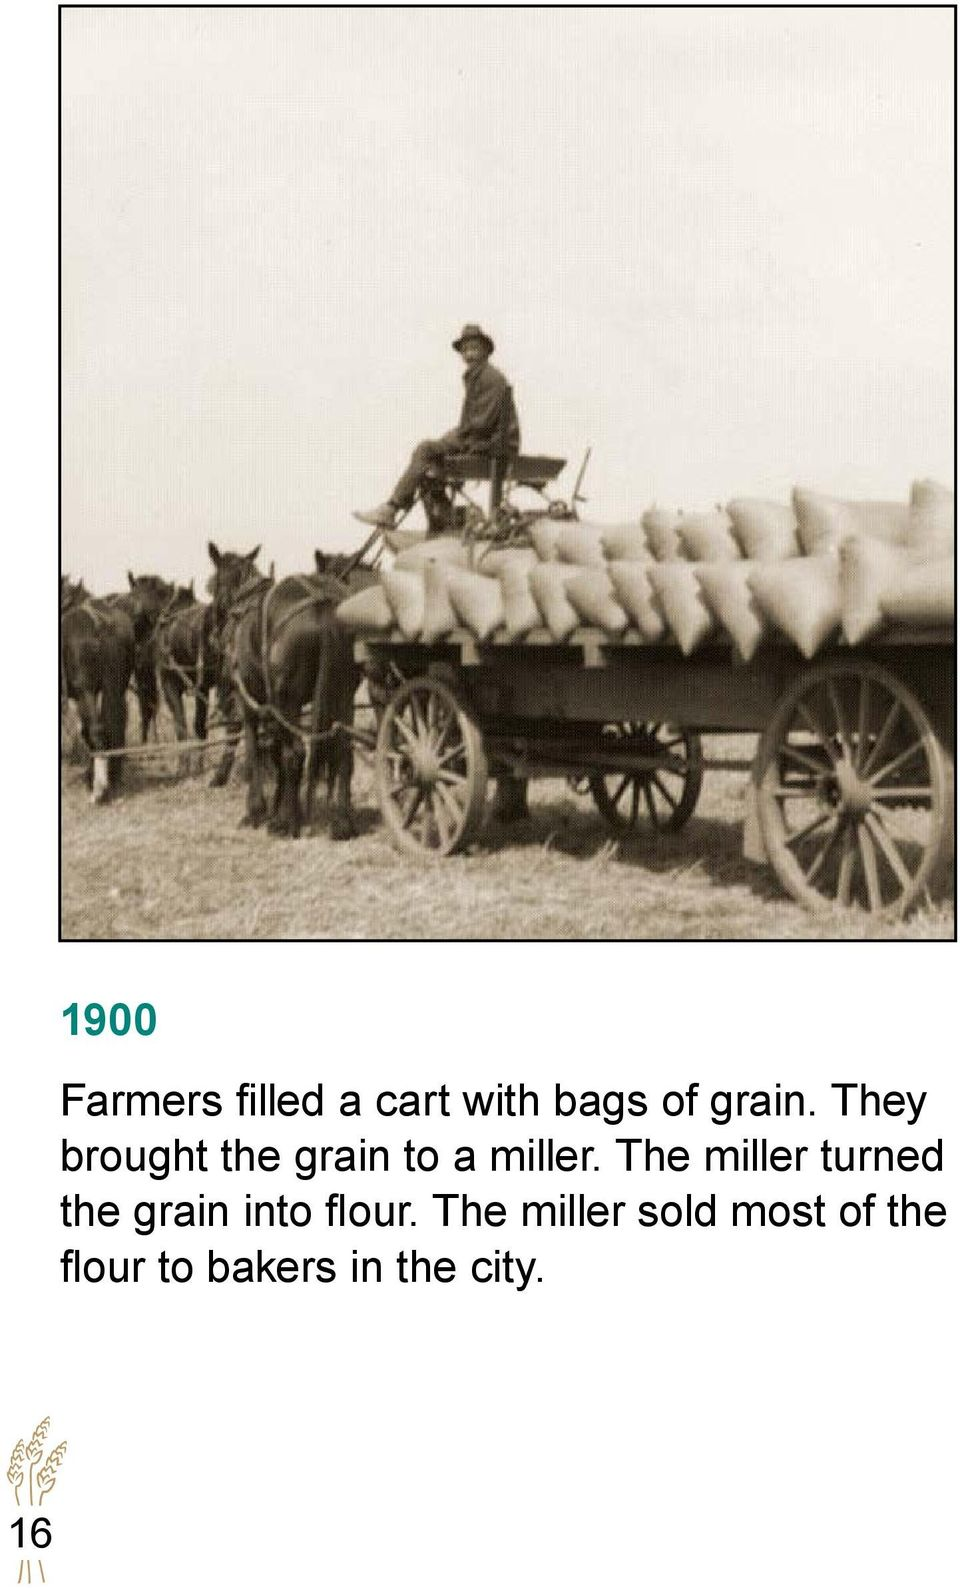 The miller turned the grain into flour.